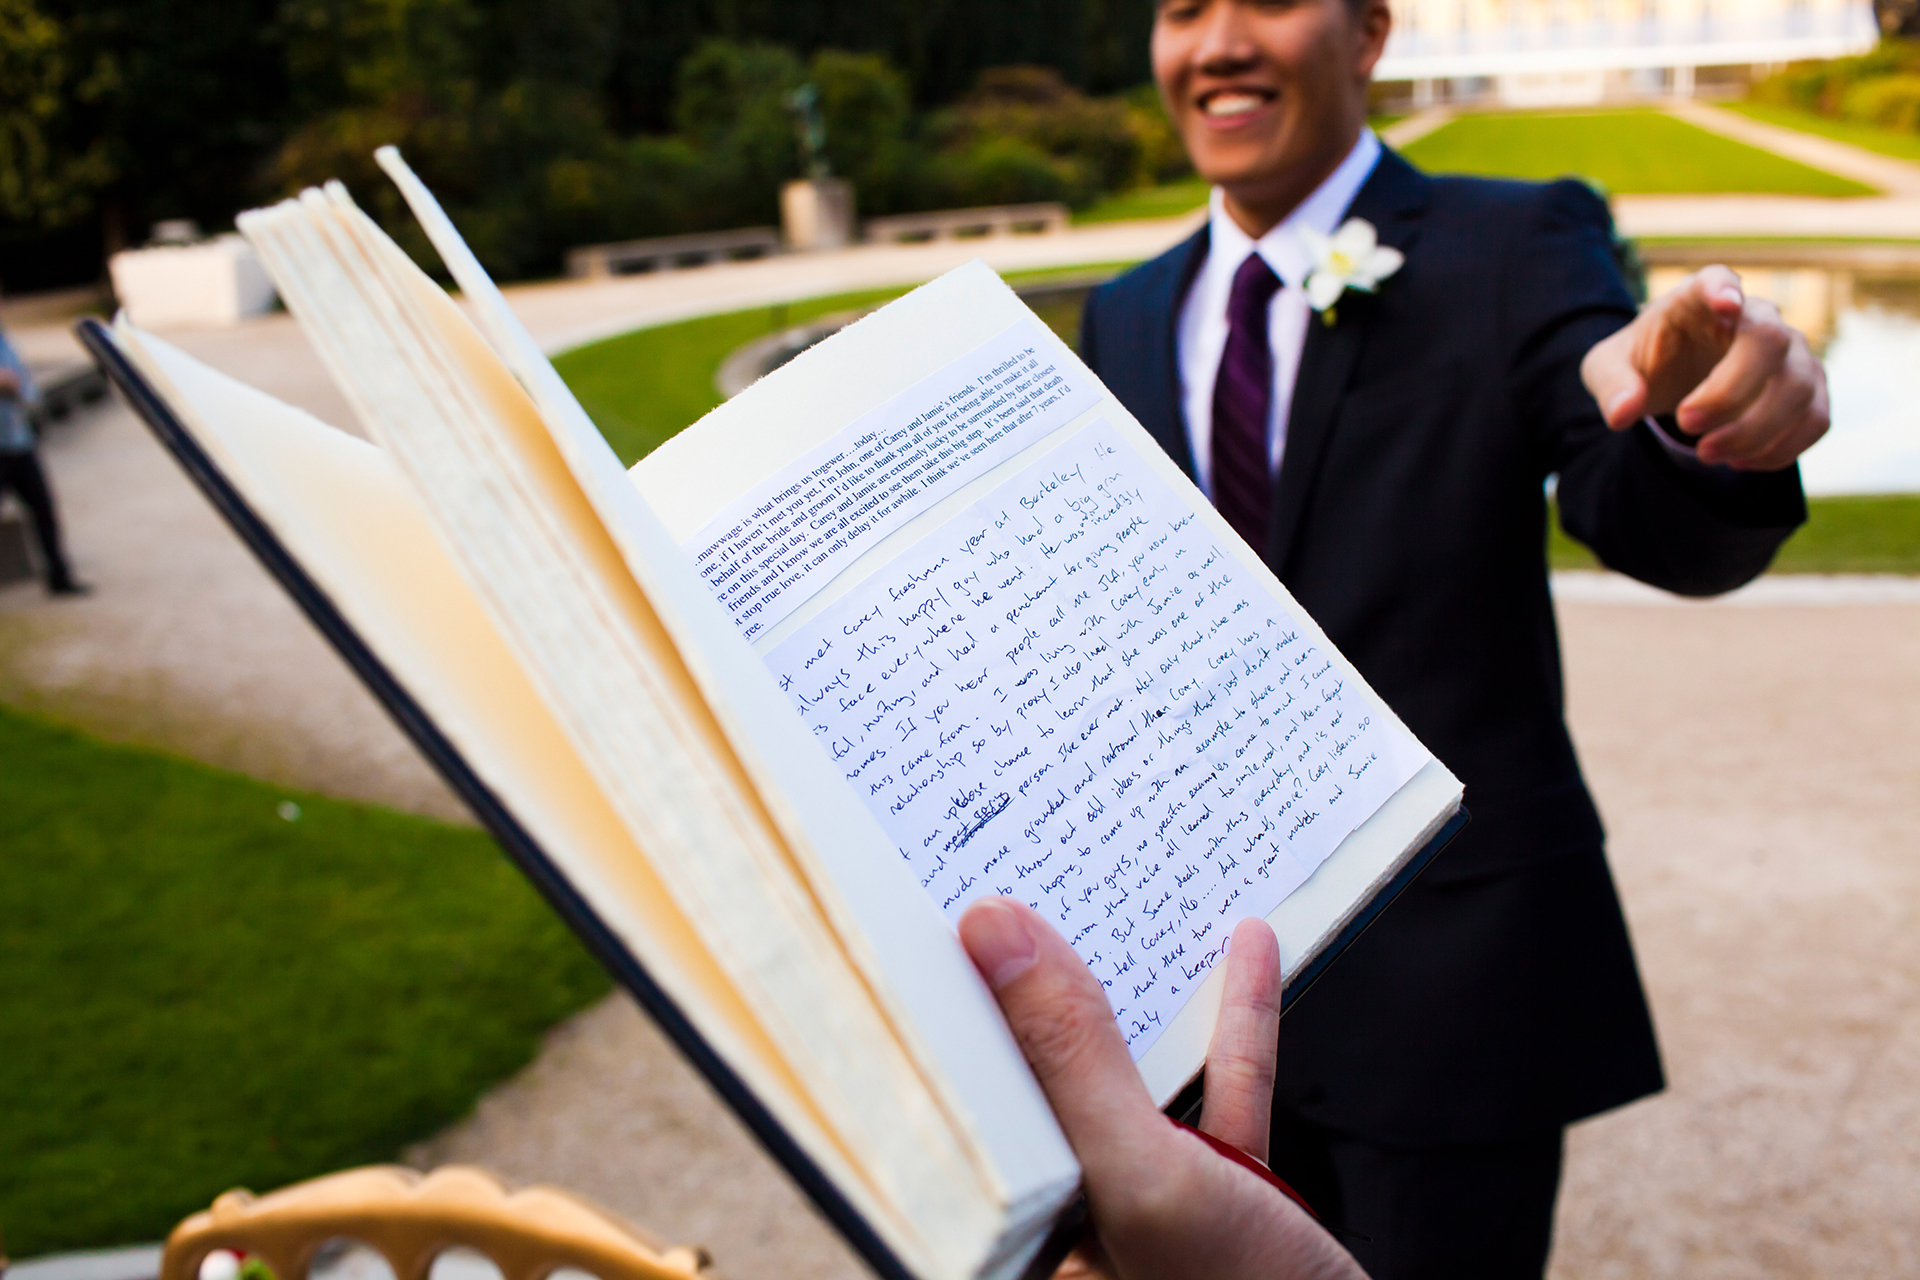 Paris Elopement Detail Image | We get to see a quick glimpse of the groom's handwritten wedding vows